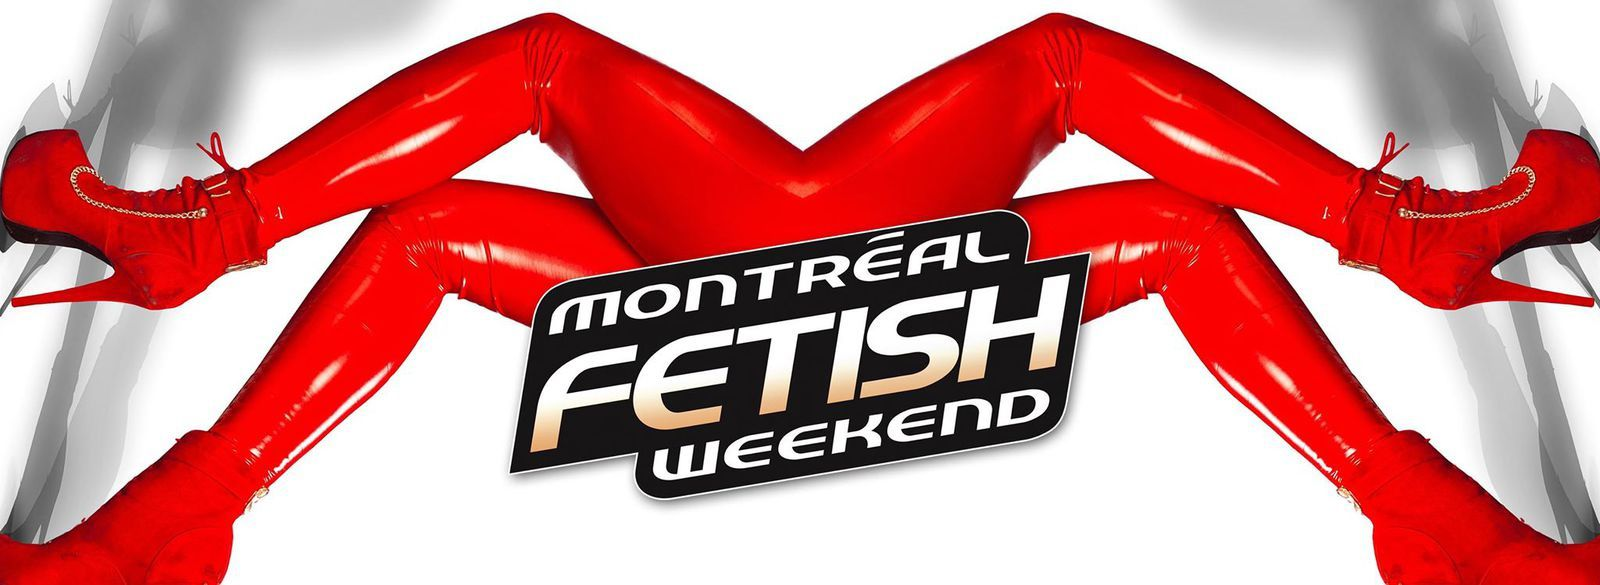 Montréal Fetish Weekend 2014 BY Ashley Murfin Photography